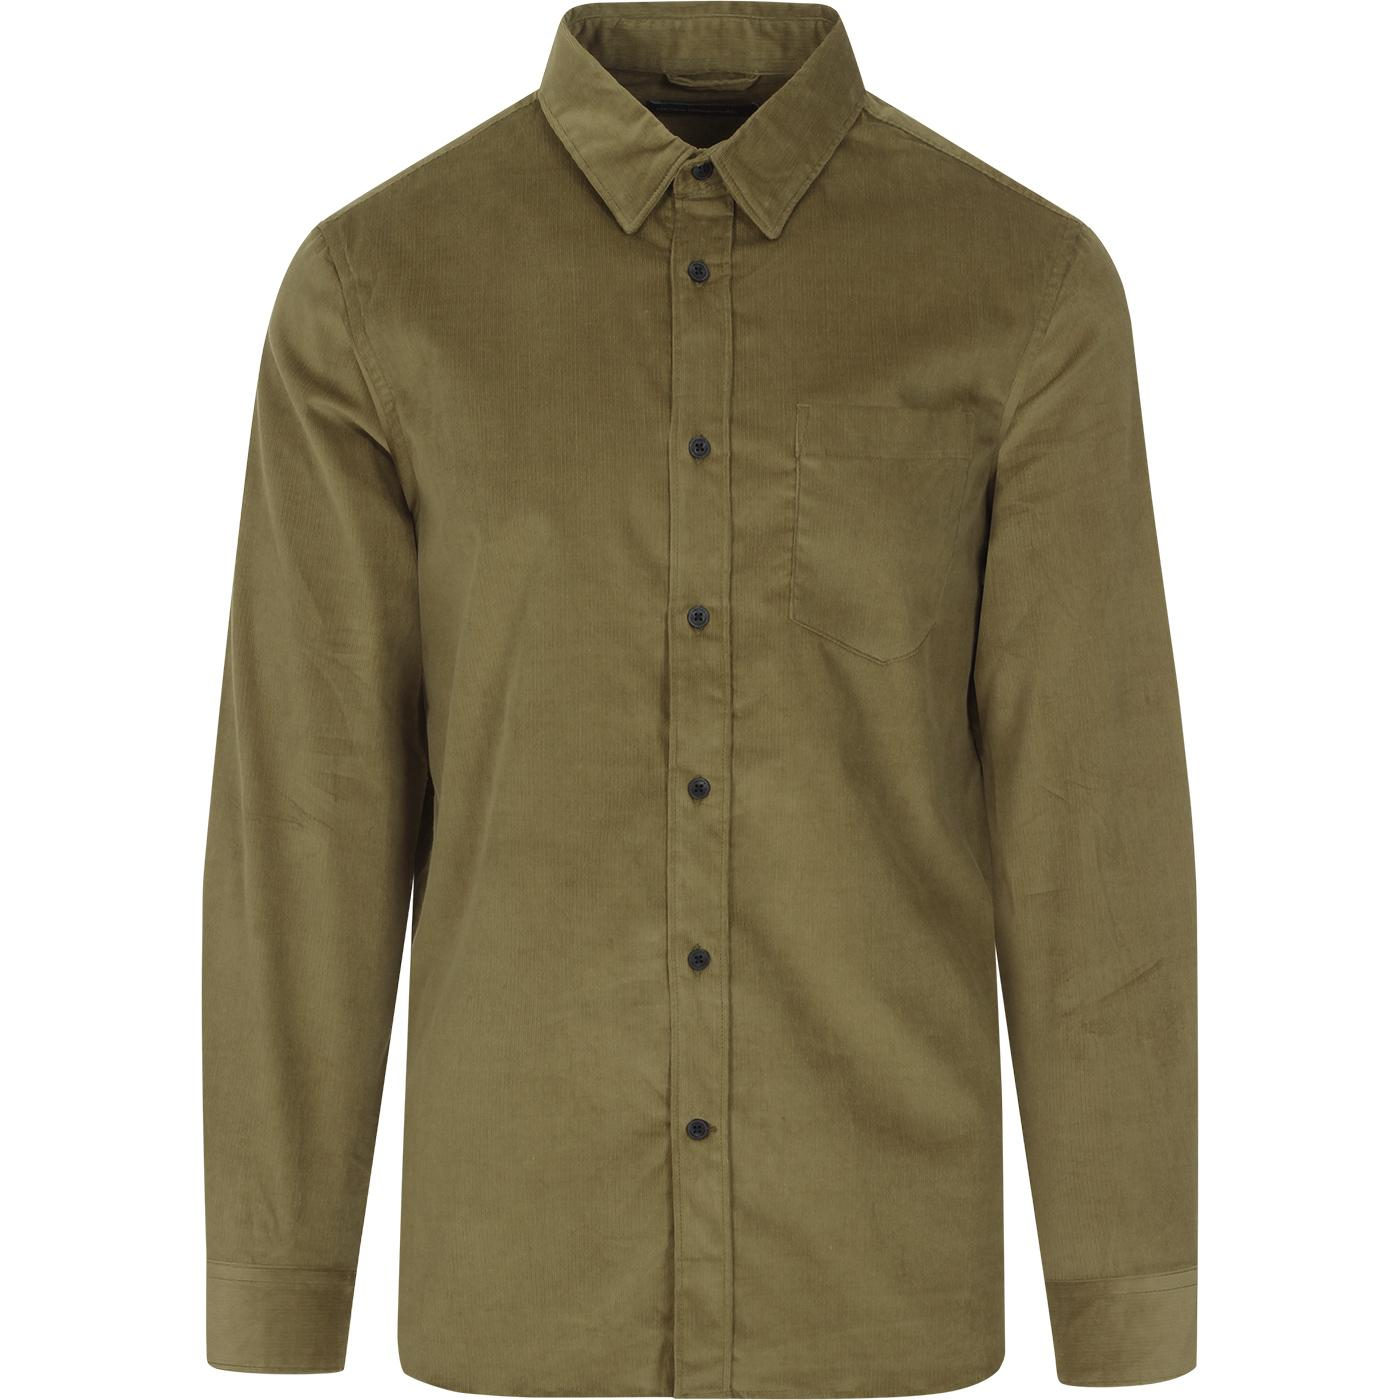 FRENCH CONNECTION Mod Micro Cord Shirt (Olive)